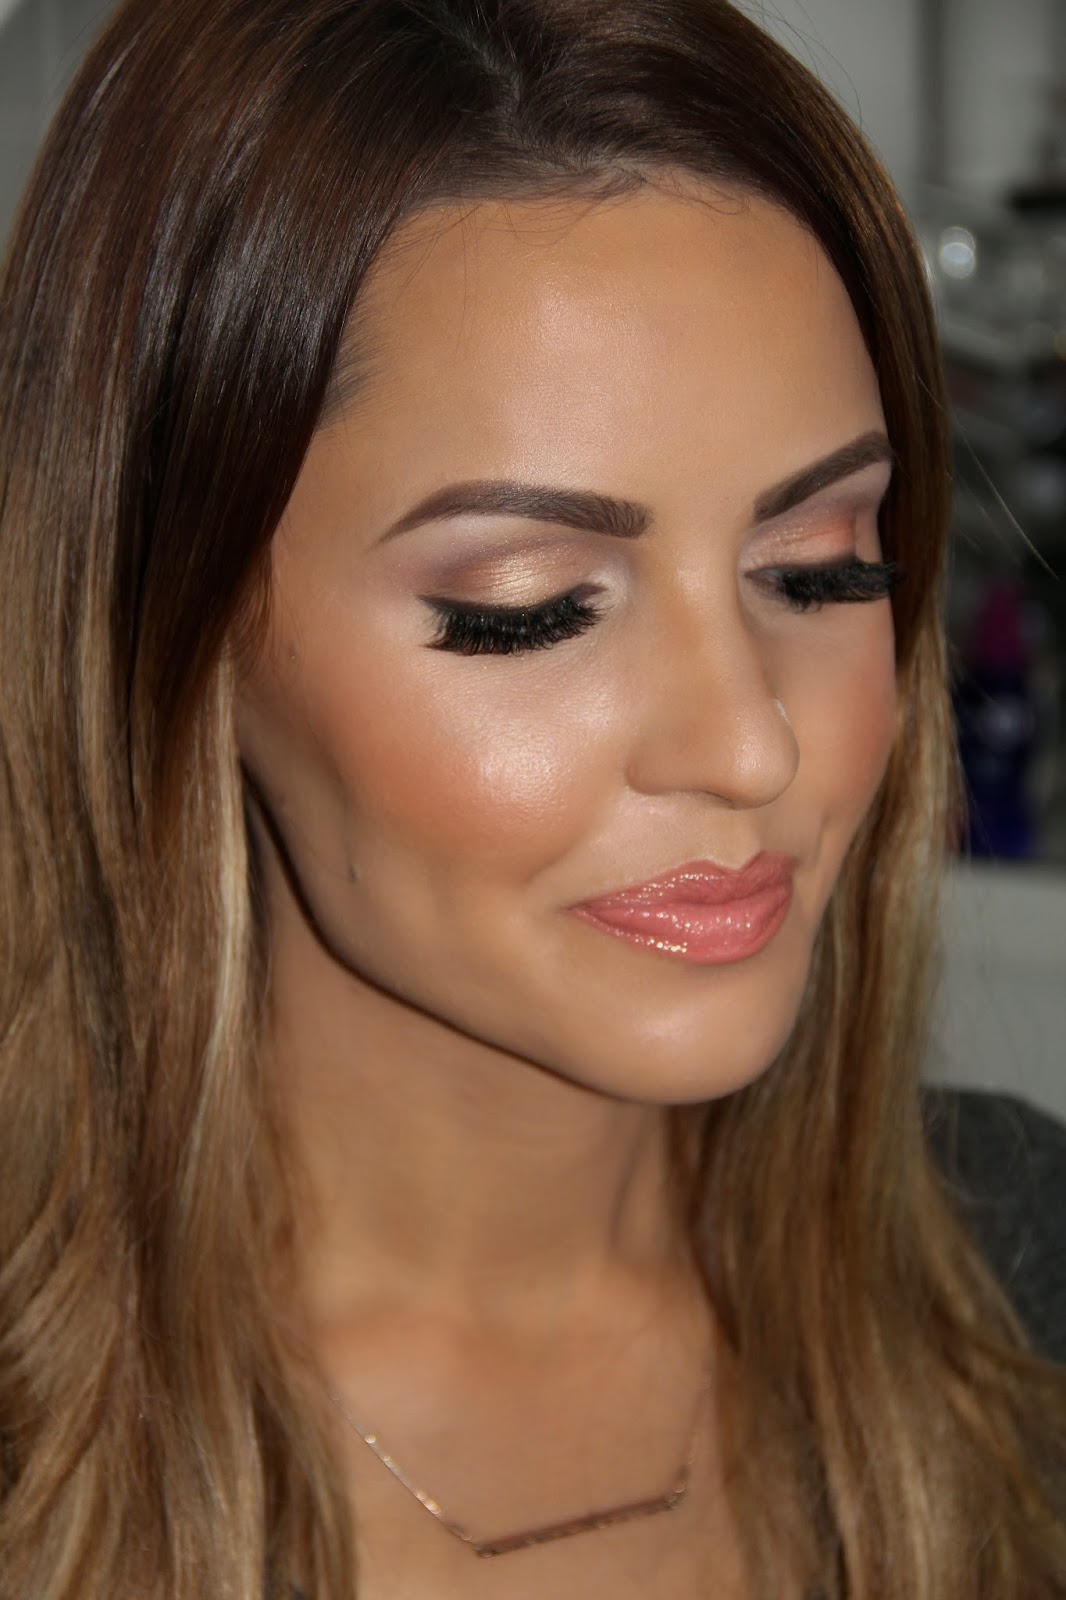 Mac Highlight Contouring Makeup Cosmetics And